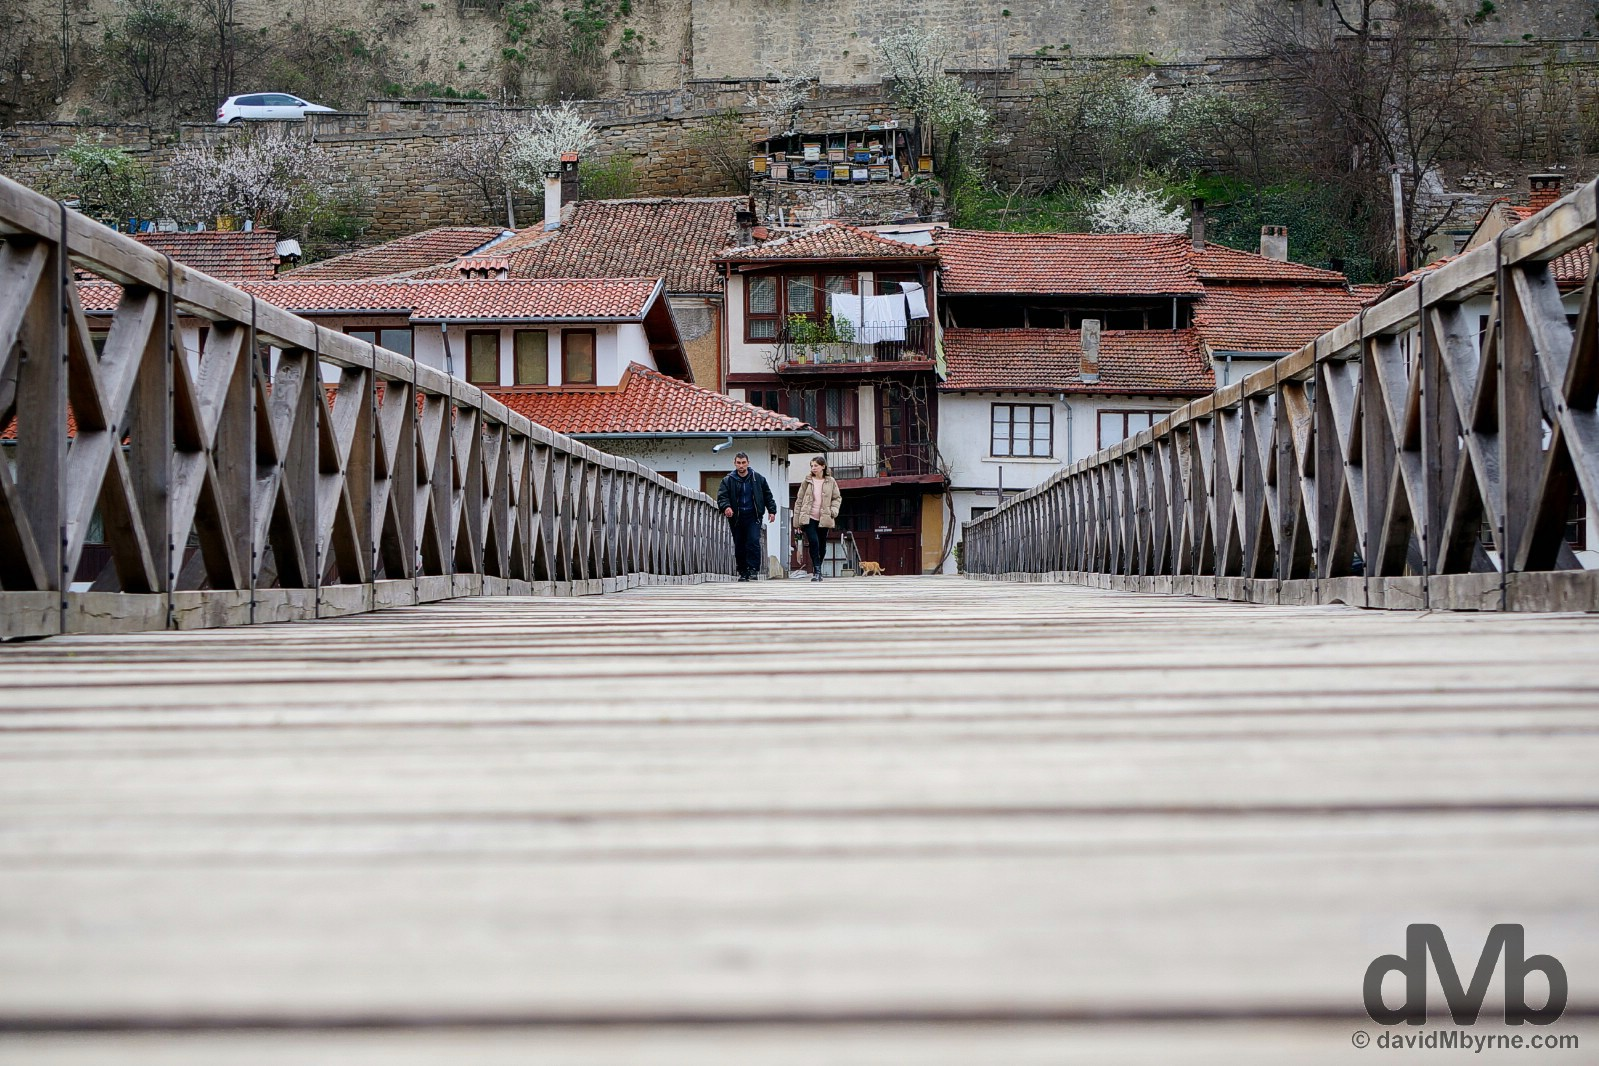 Vladishki most (Bishop's Bridge) crossing the Yantra River in Veliko Tarnovo, Bulgaria. March 30, 2015.